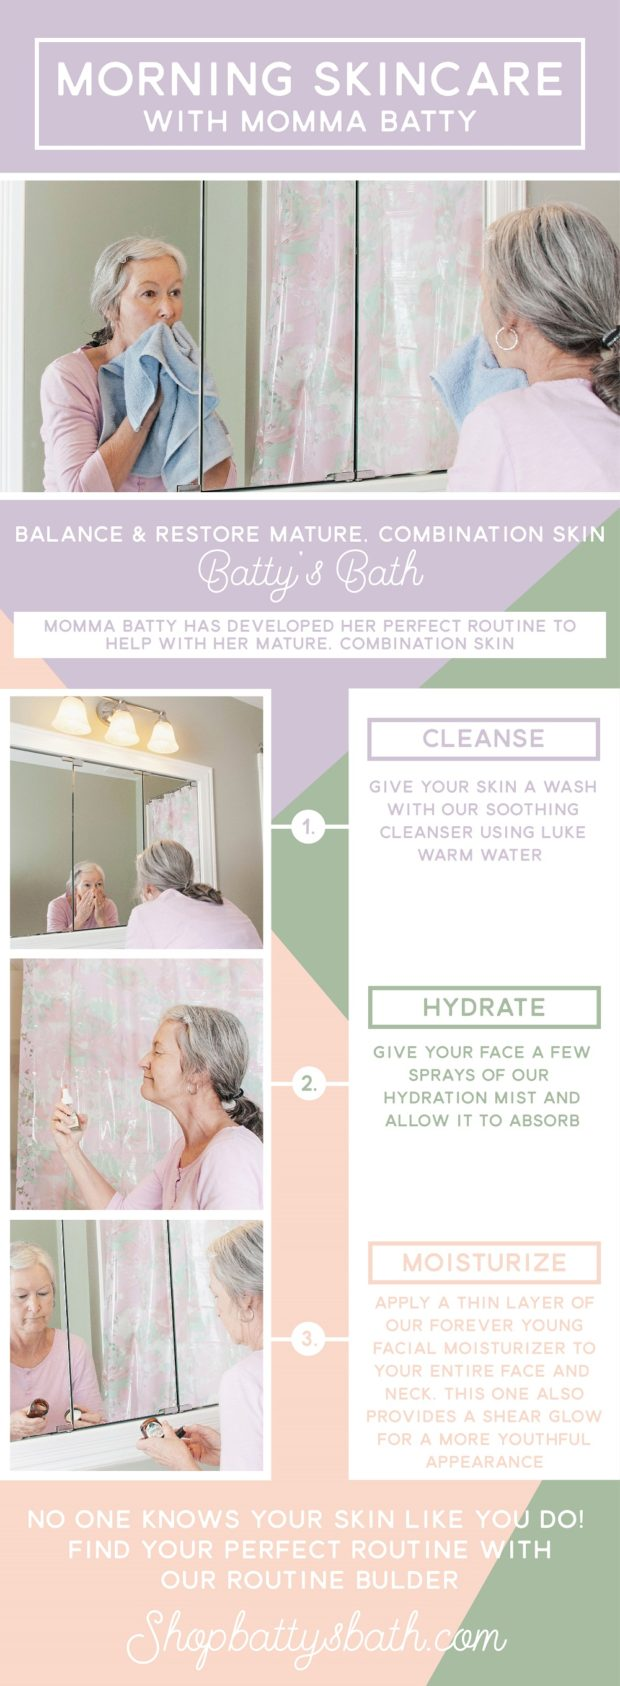 Morning skin care routine for Momma Batty who's mature, combination skin